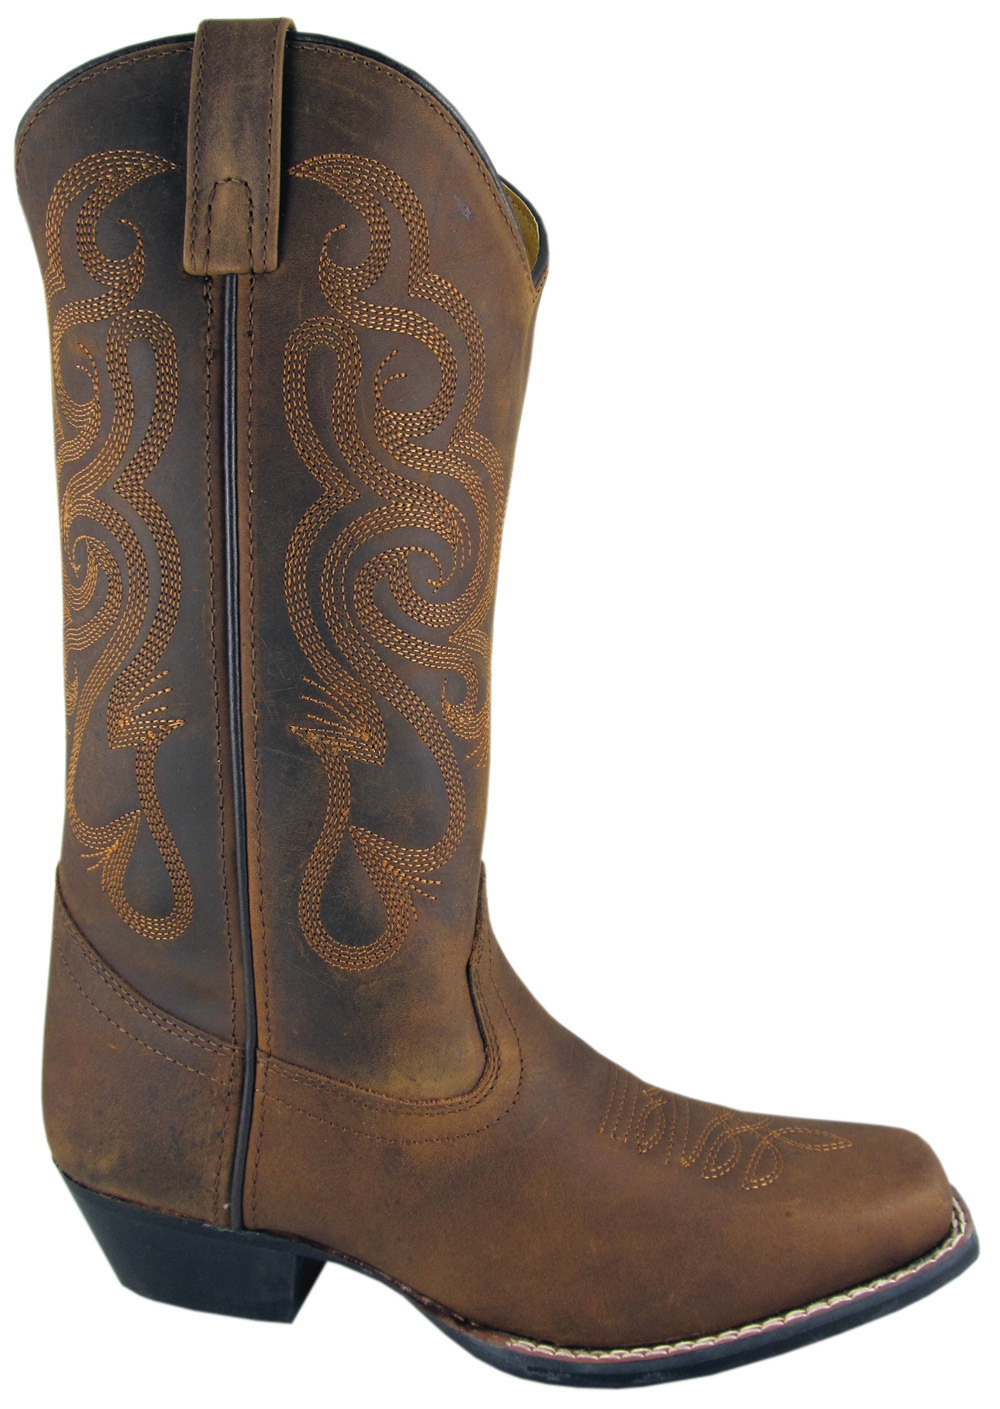 Lariat&quot Distressed leather womens cowboy boots